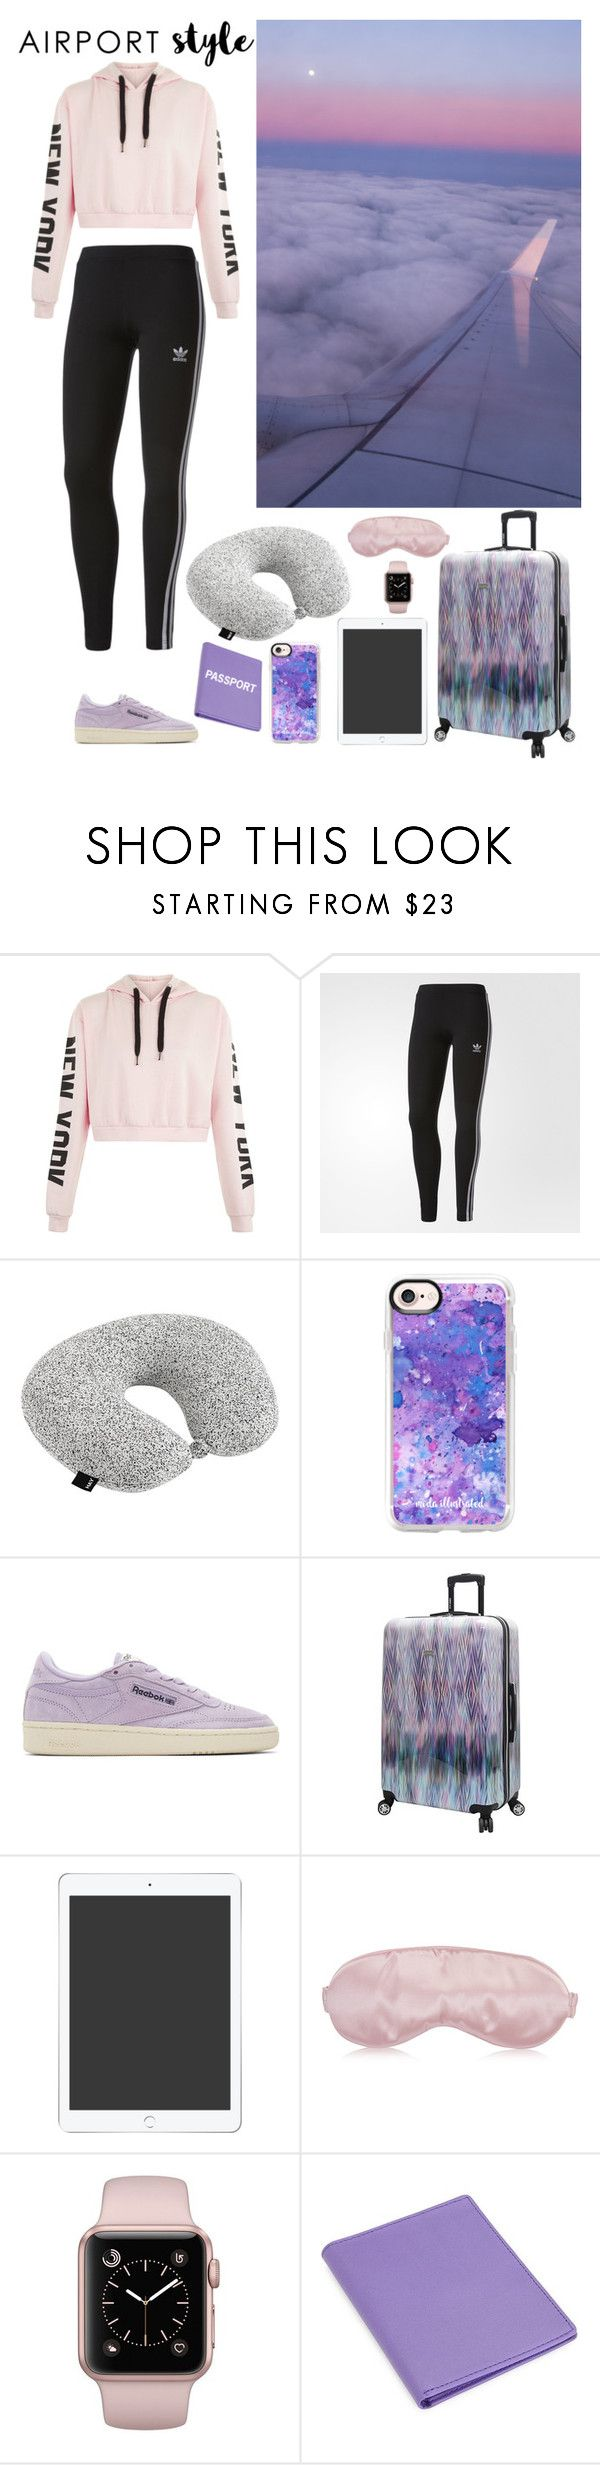 """""""Jet Set : Airport Style [Contest]"""" by emiliefrenchgirl ❤ liked on Polyvore featuring adidas, HAY, Casetify, Reebok, Steve Madden, Royce and 91"""